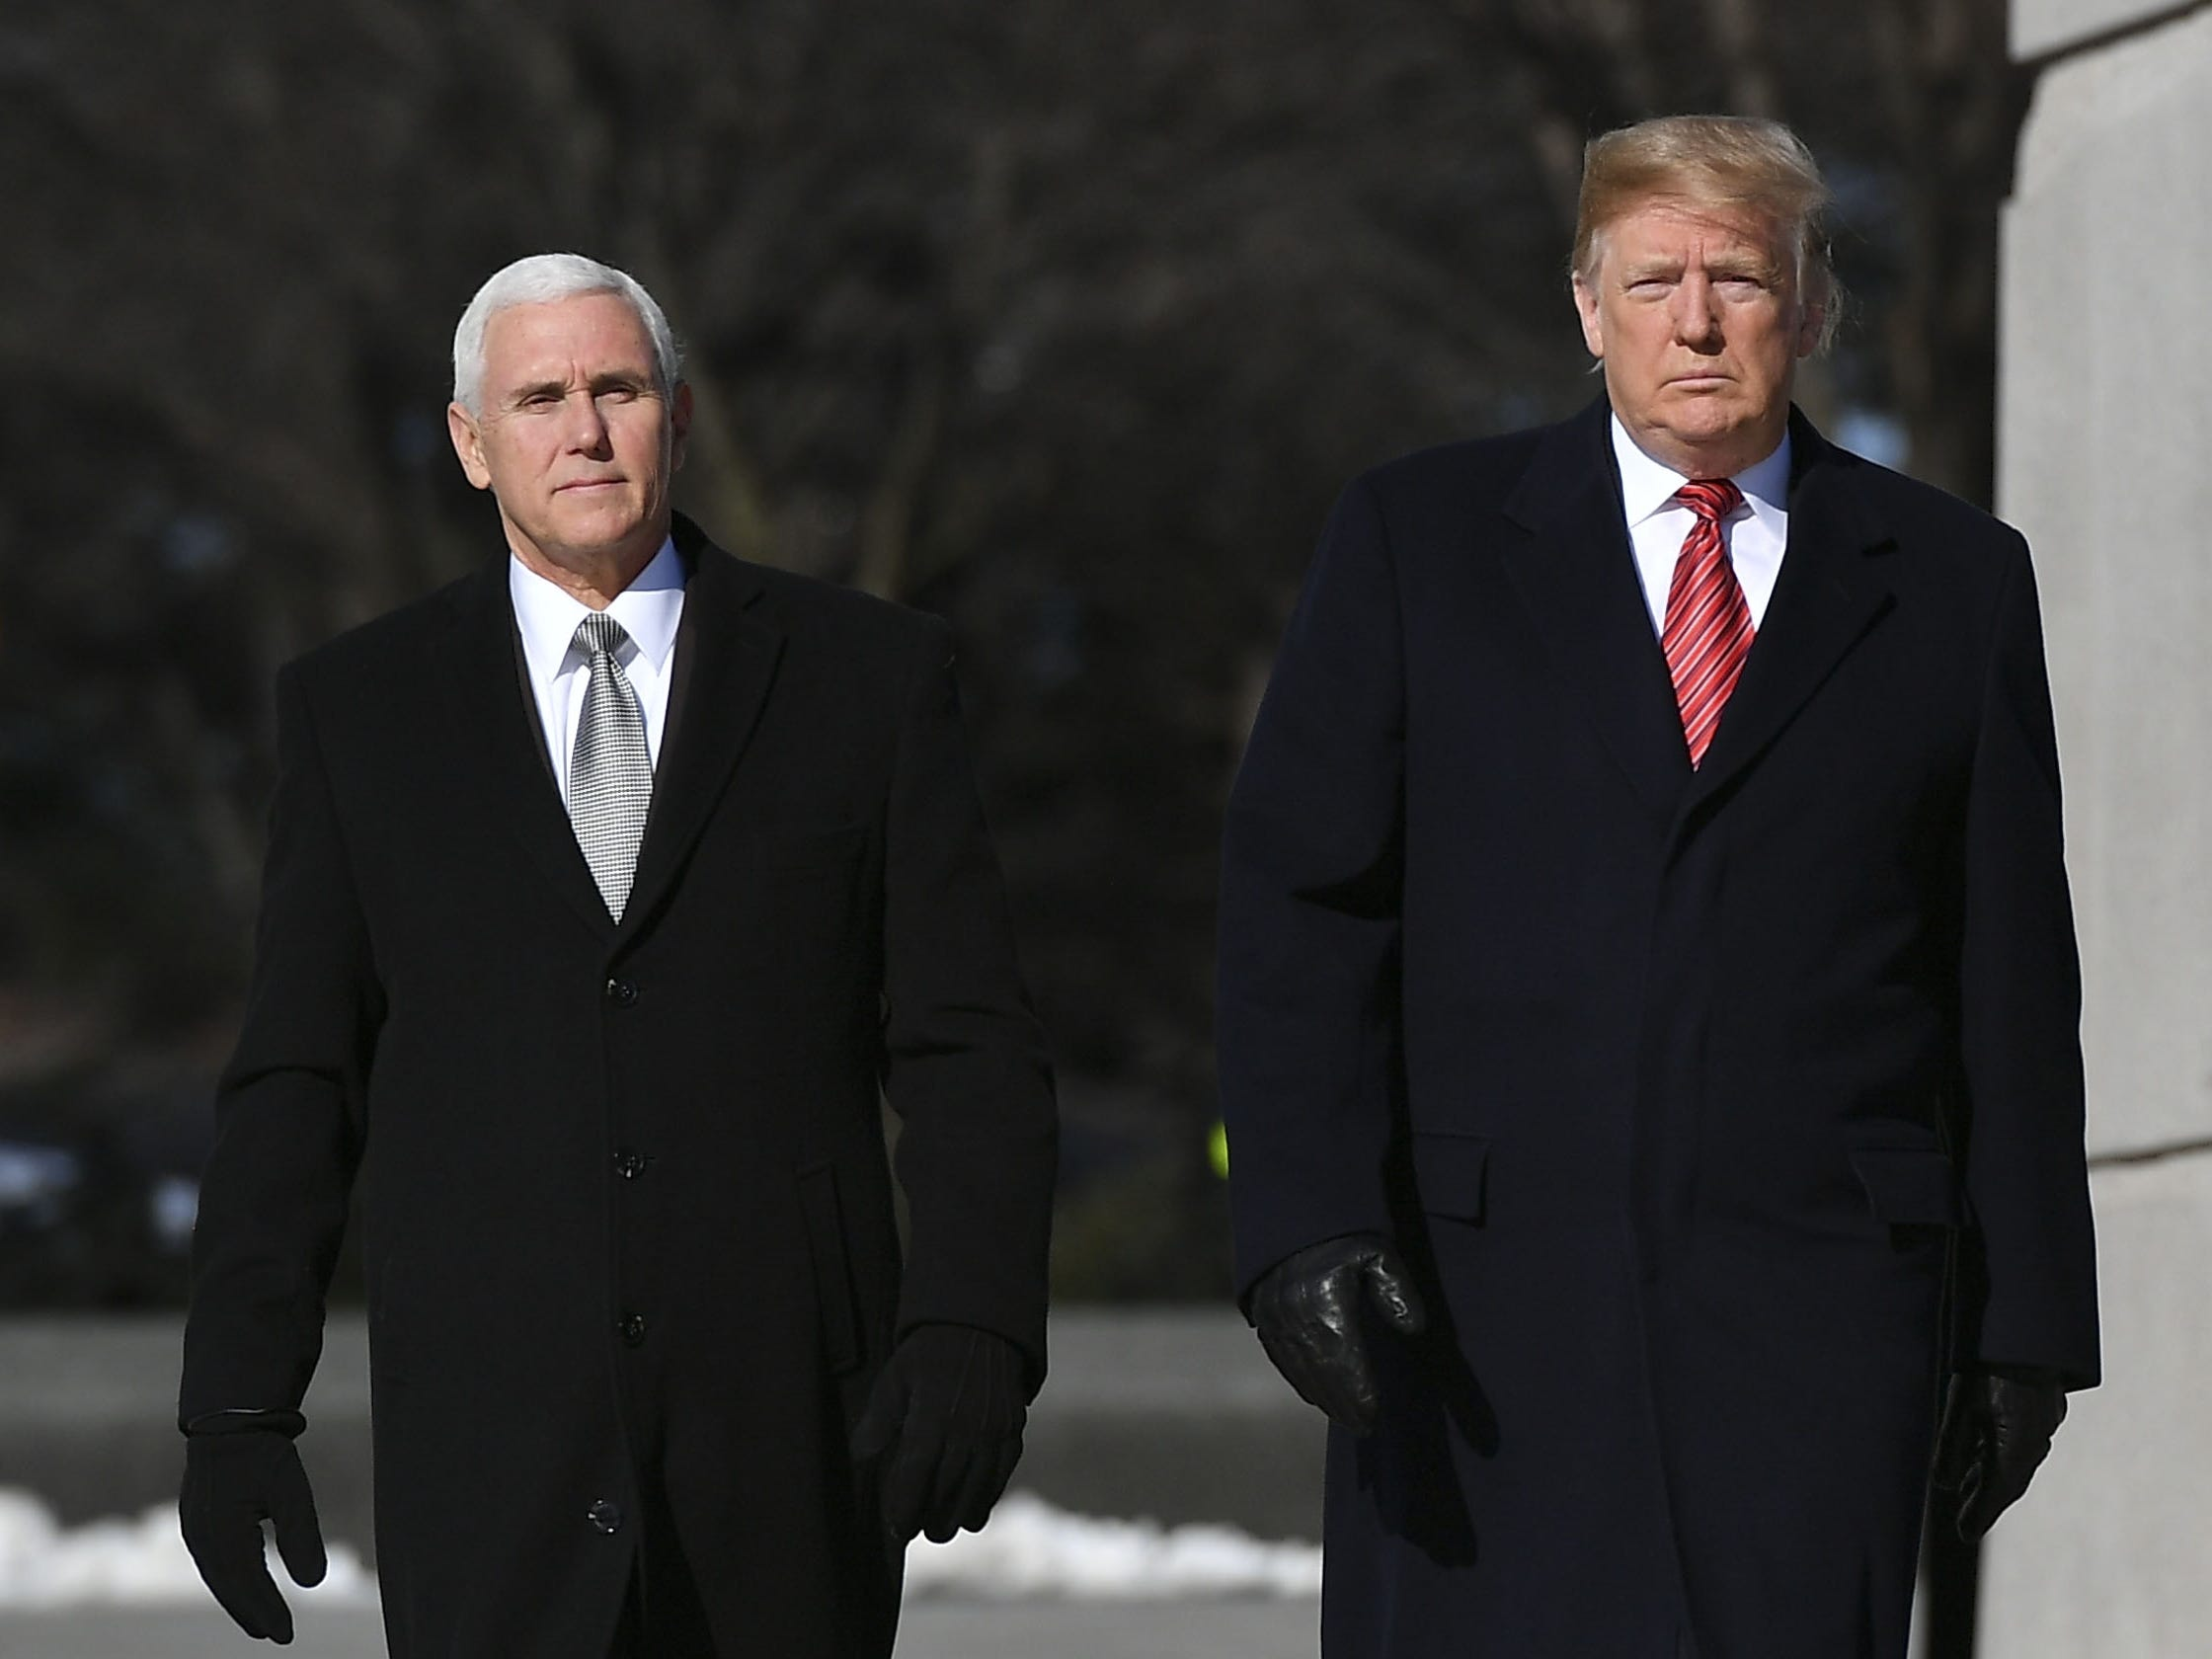 President Donald Trump and Vice President Mike Pence visit the Martin Luther King Jr. Memorial in Washington, DC on Martin Luther King Day  Jan.  21, 2019.